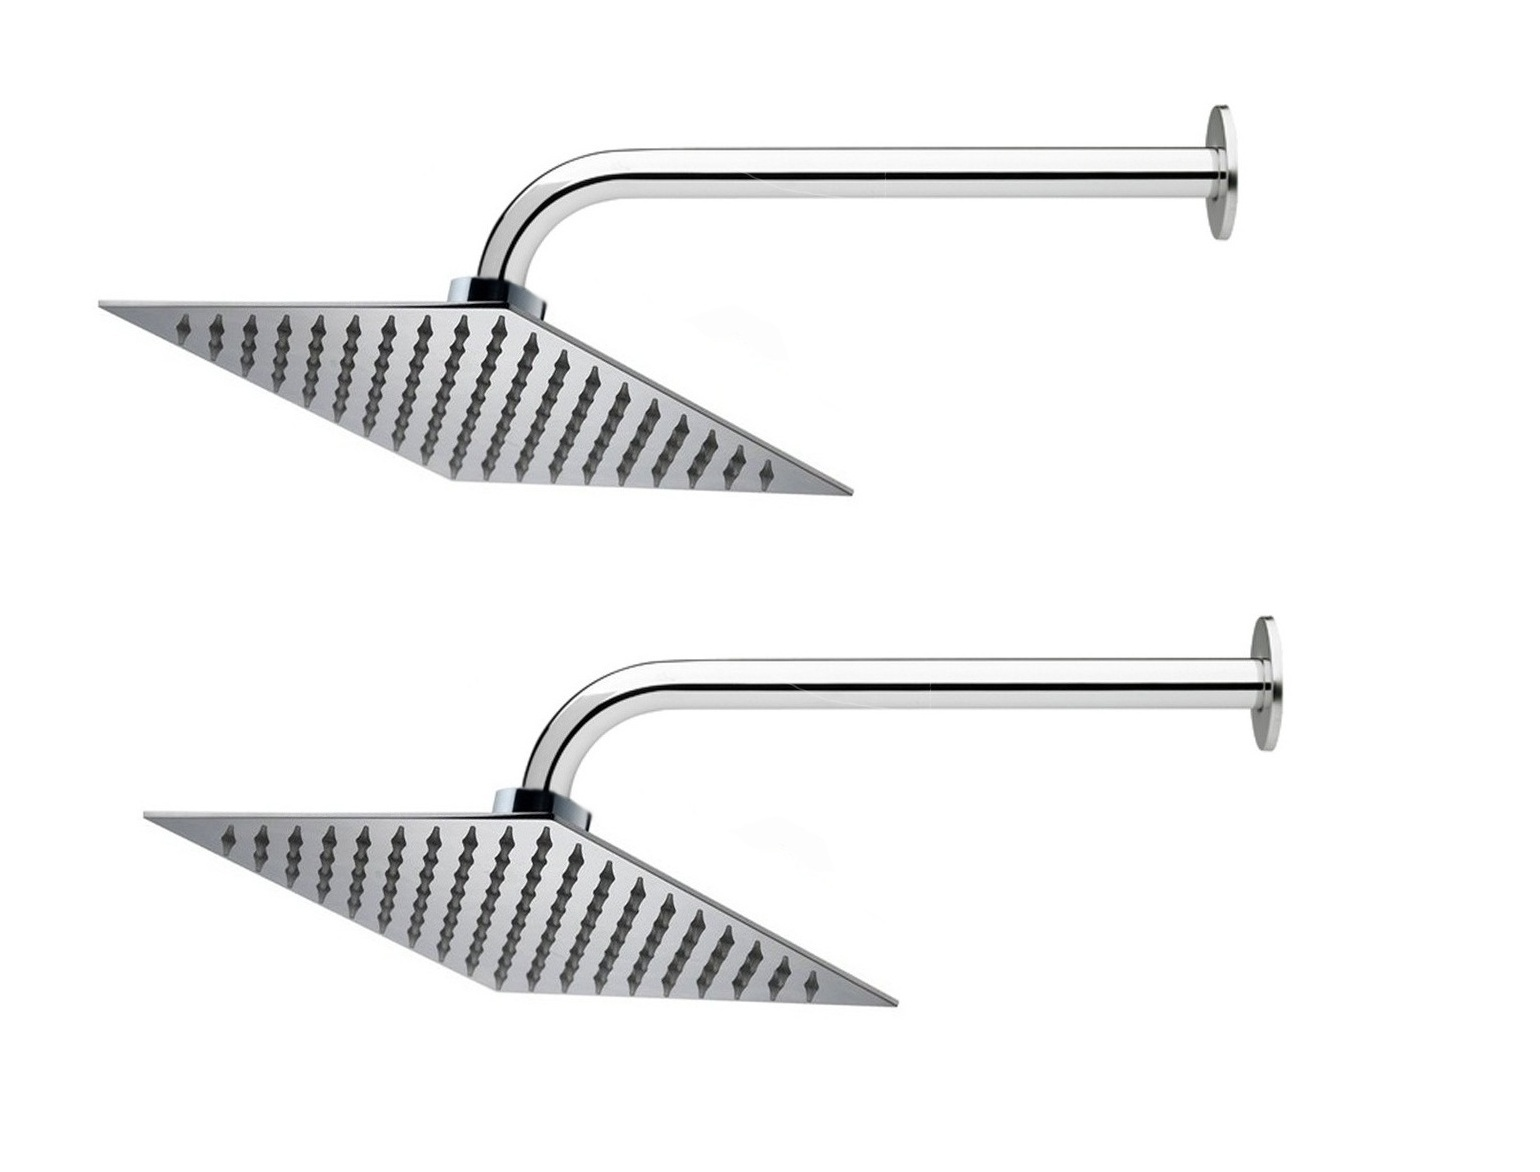 Prestige 8x8 Ultra Slim Rain Shower Head with 15inch Round Arm  Pack of 2